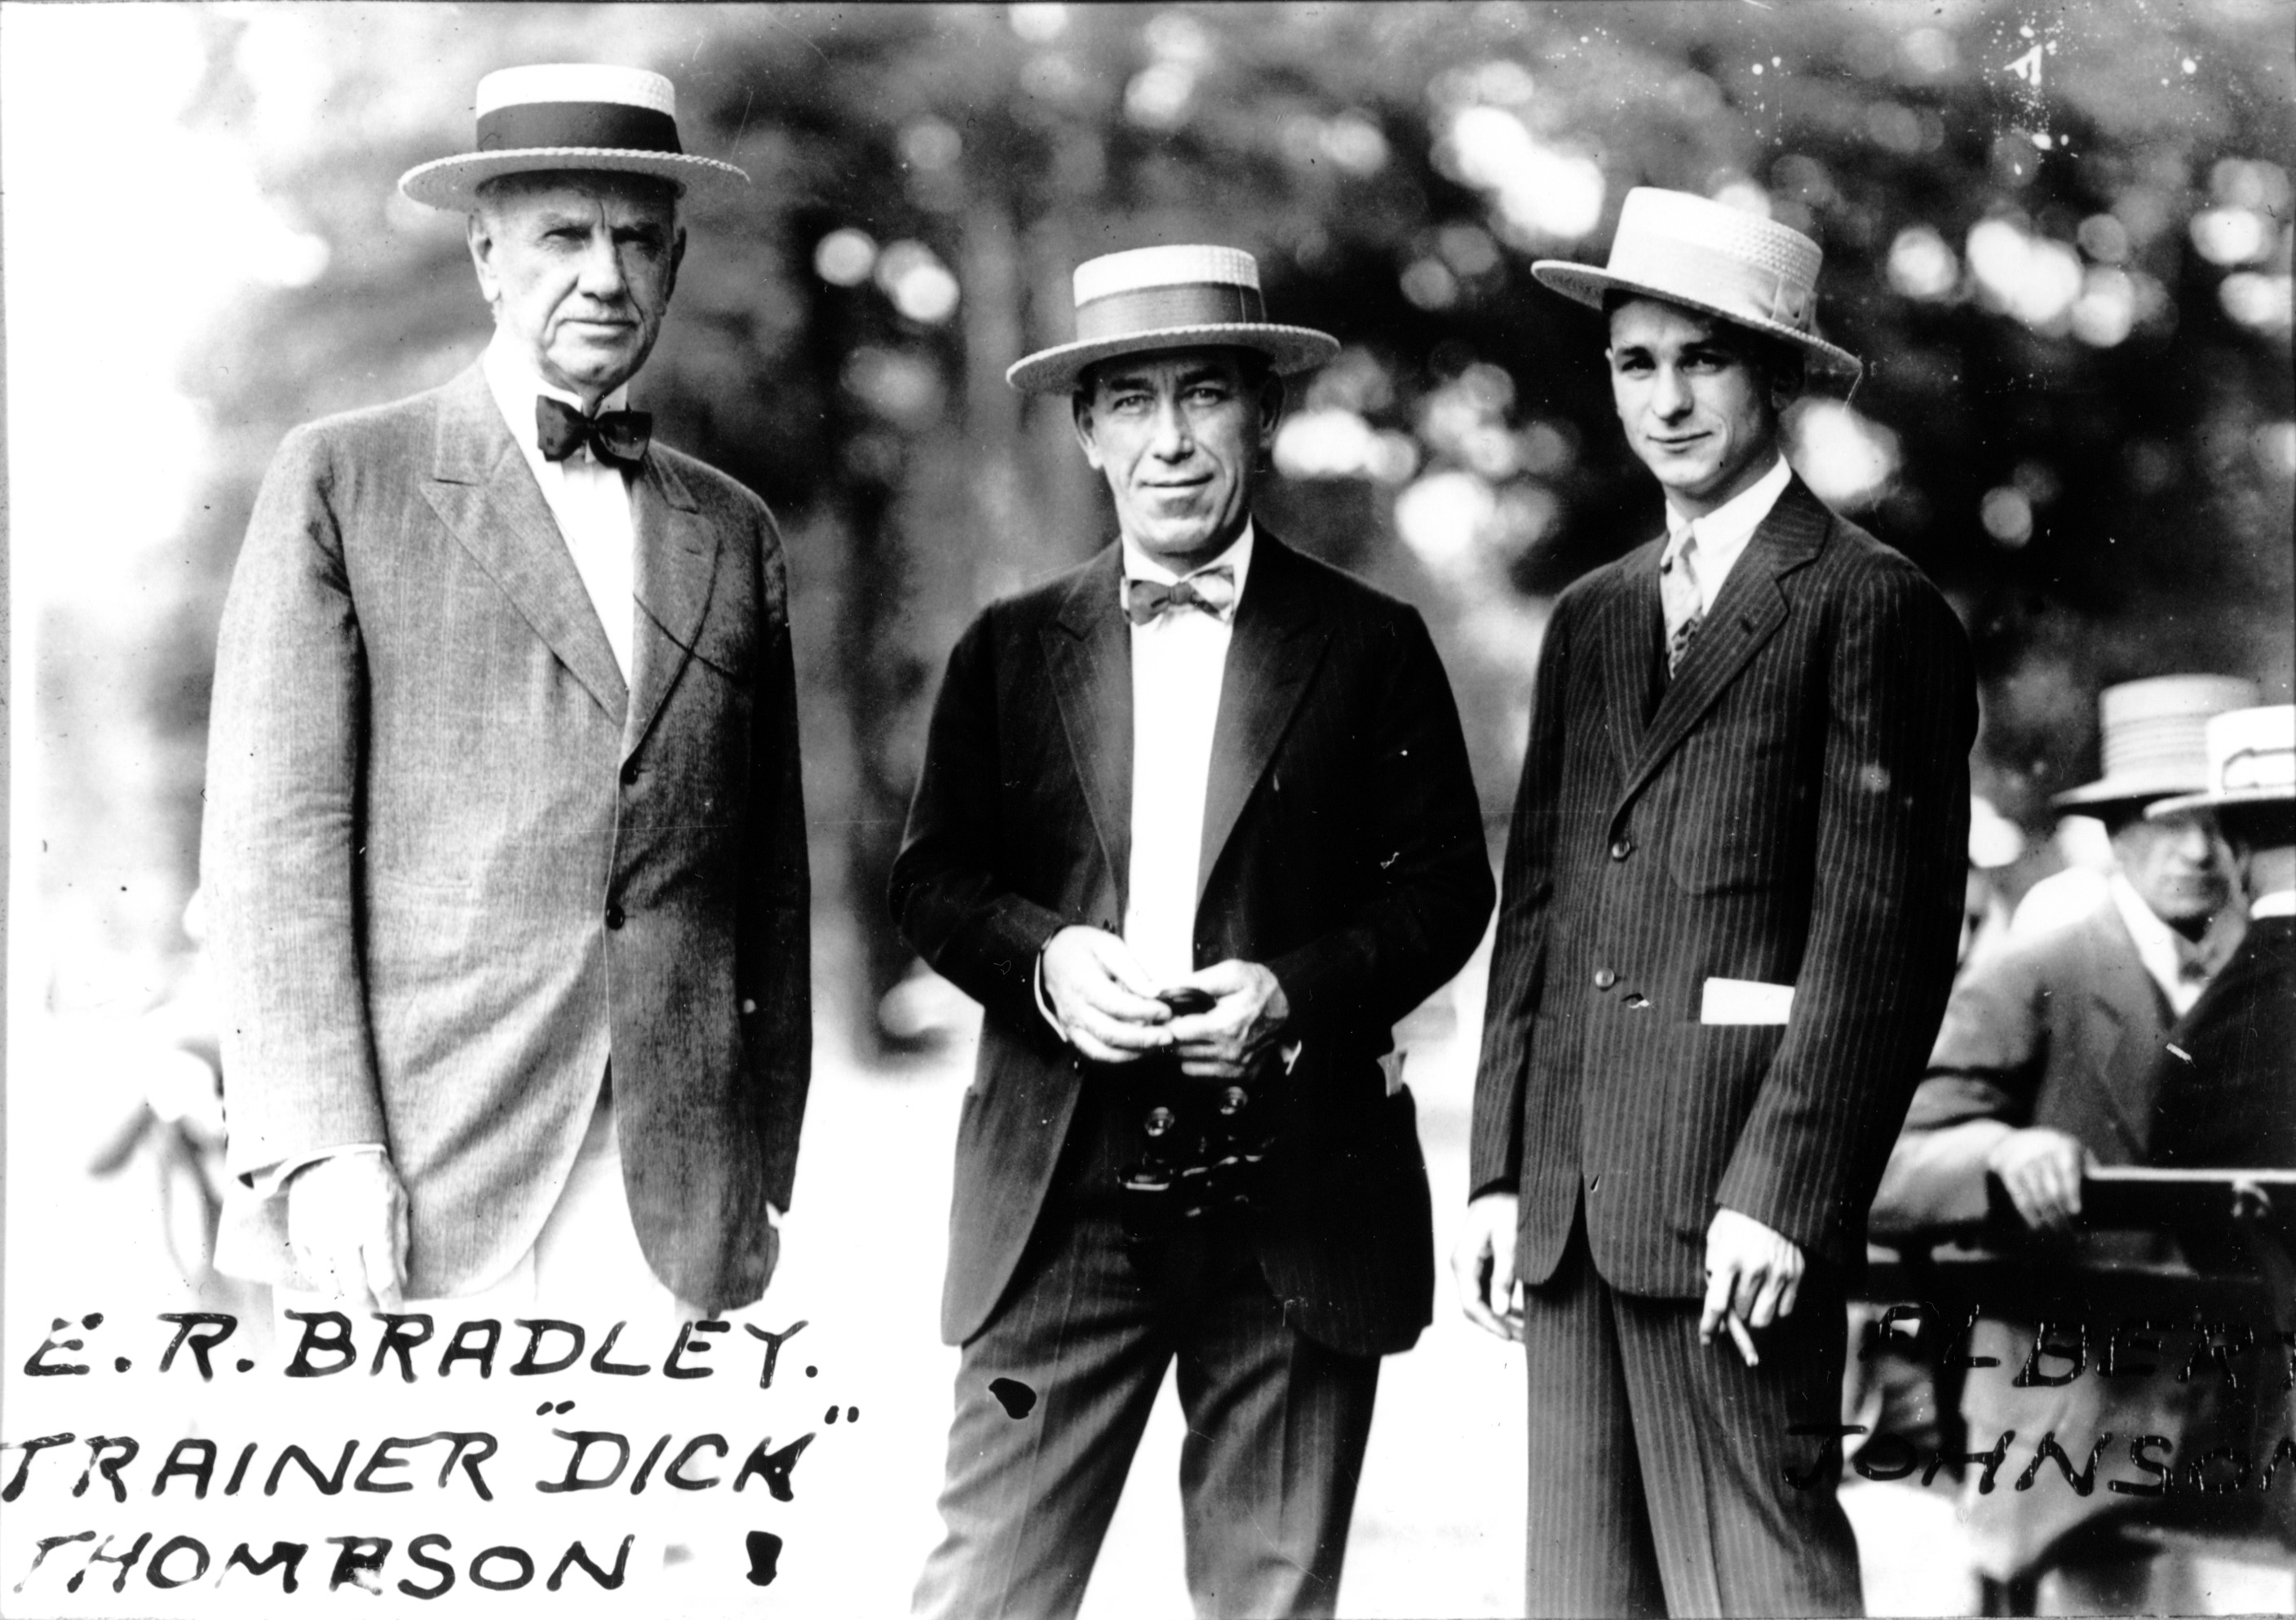 Col. E. R. Bradley, trainer Dick Thompson, and jockey Albert Johnson (C. C. Cook/Museum Collection)